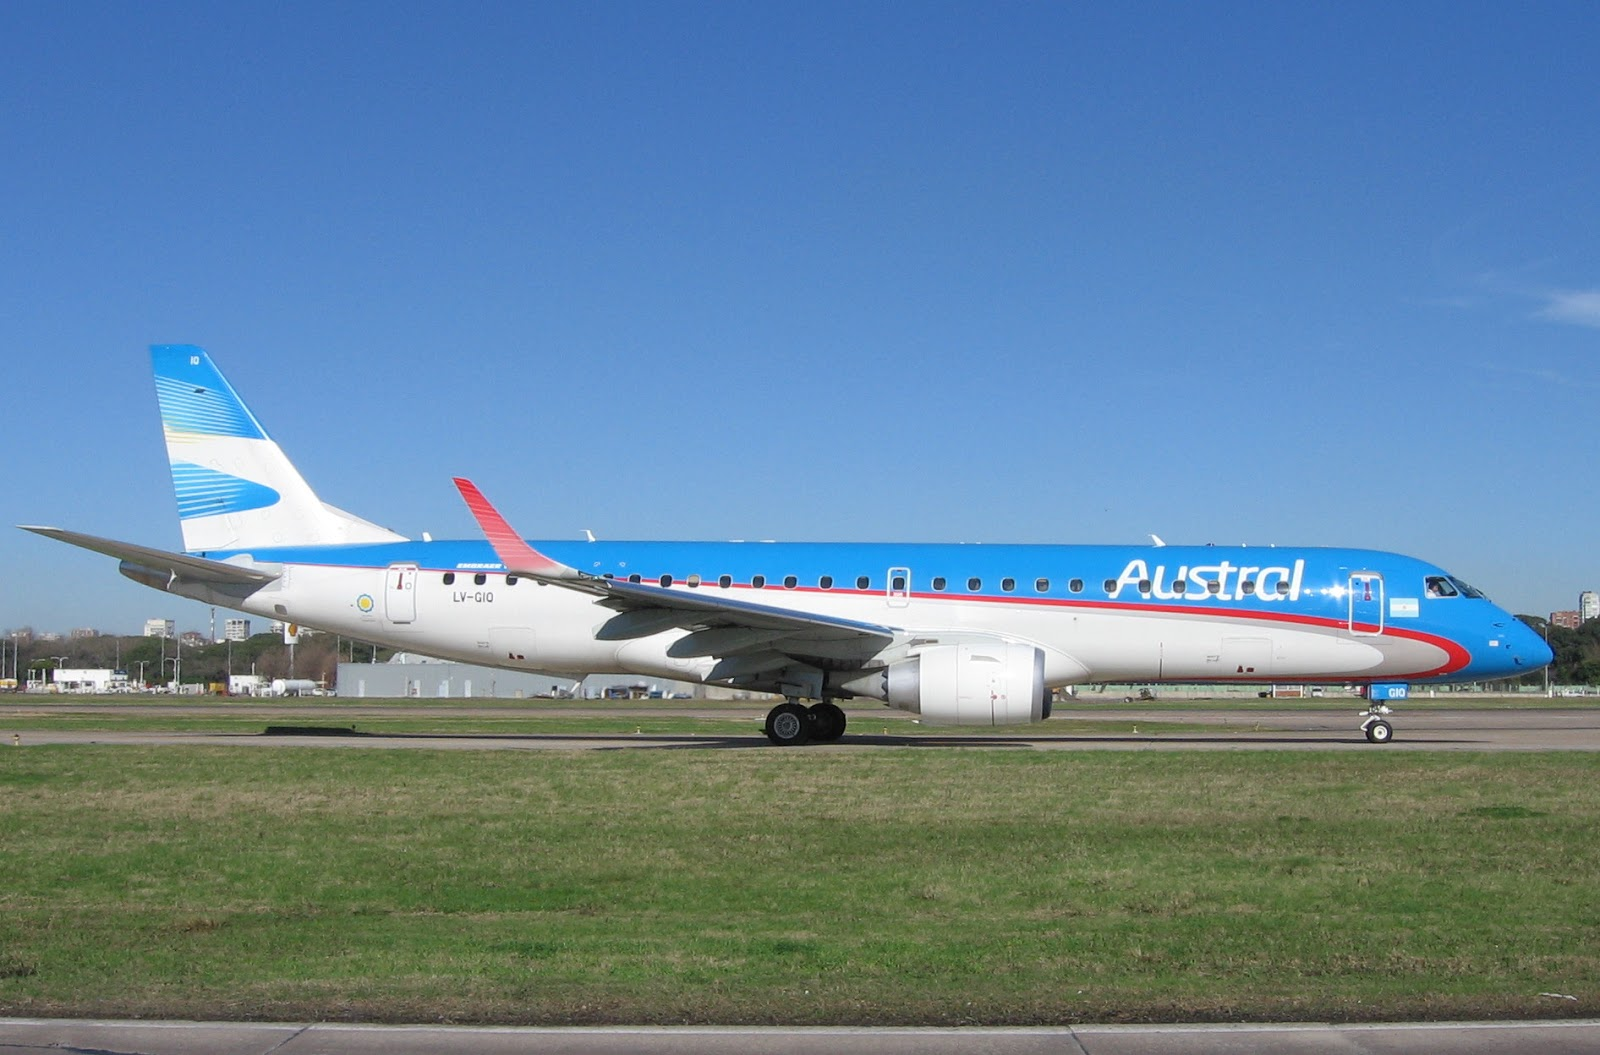 f19ca990e6f593 Austral took delivery of LV-GIQ less than two years ago on 29Jul16